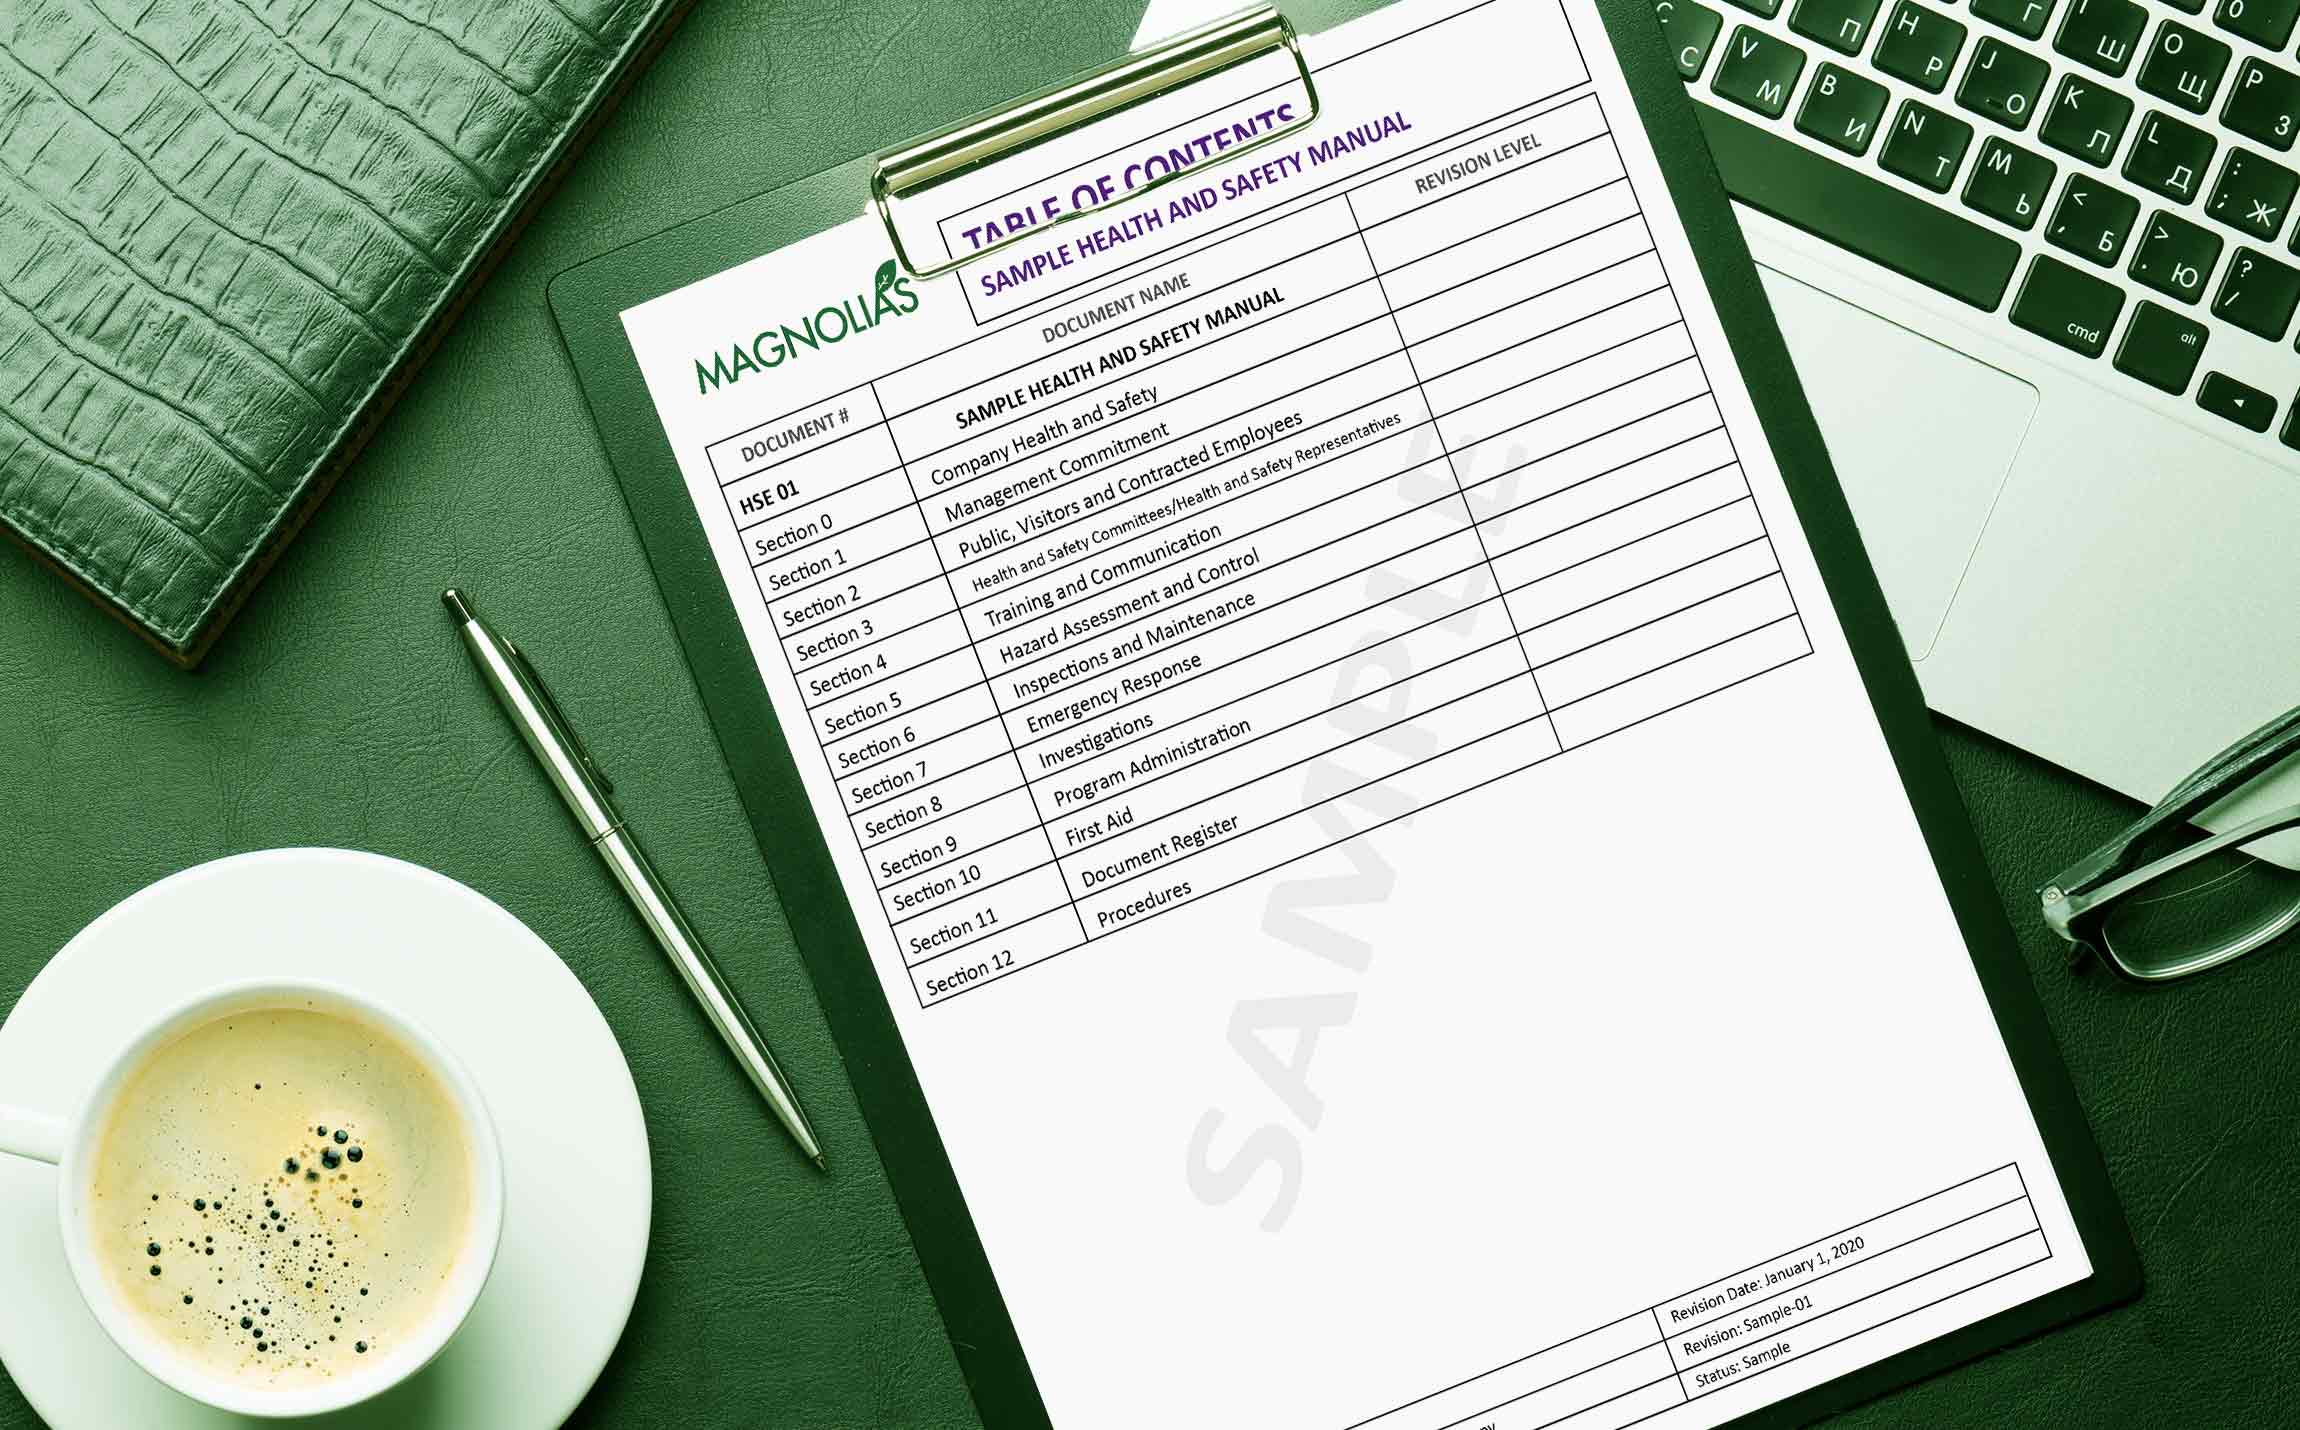 This health and safety manual table of contents, free download.